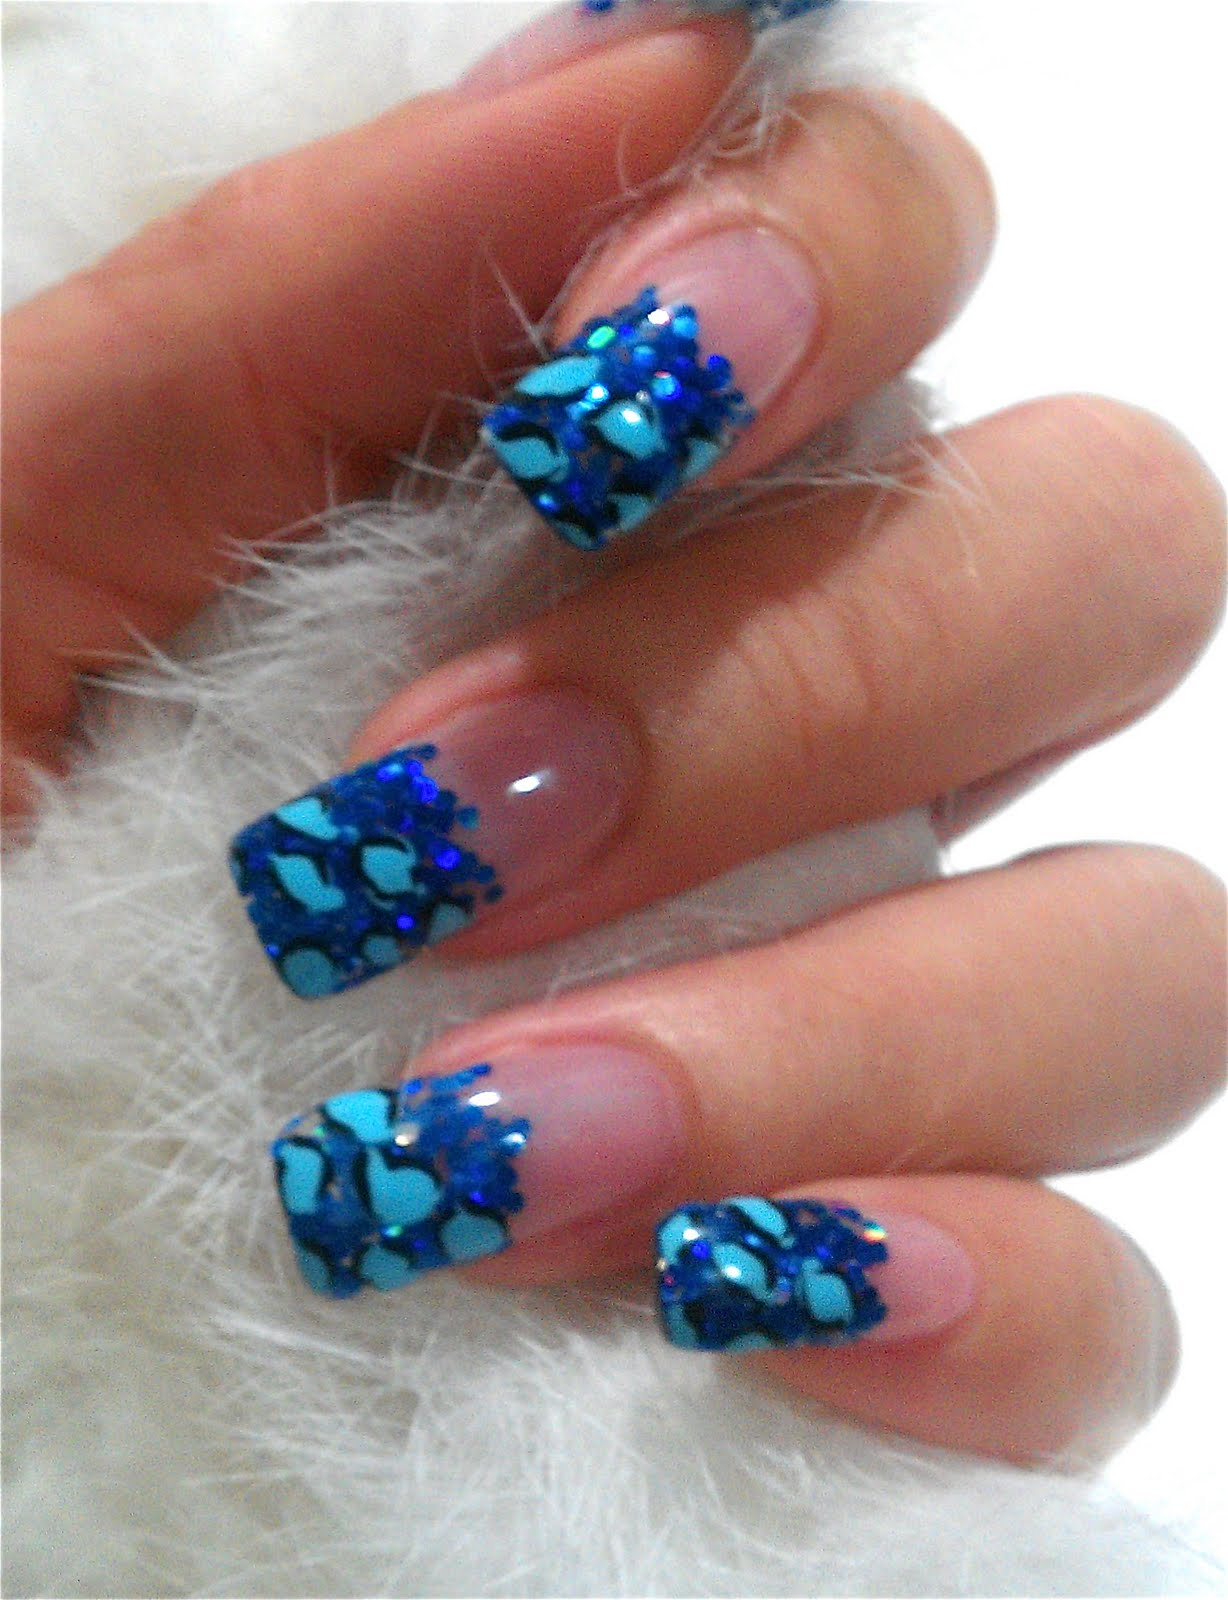 The Clover Beauty Inn: NOTD: Blue Glitter Leopard Print Gel Nails